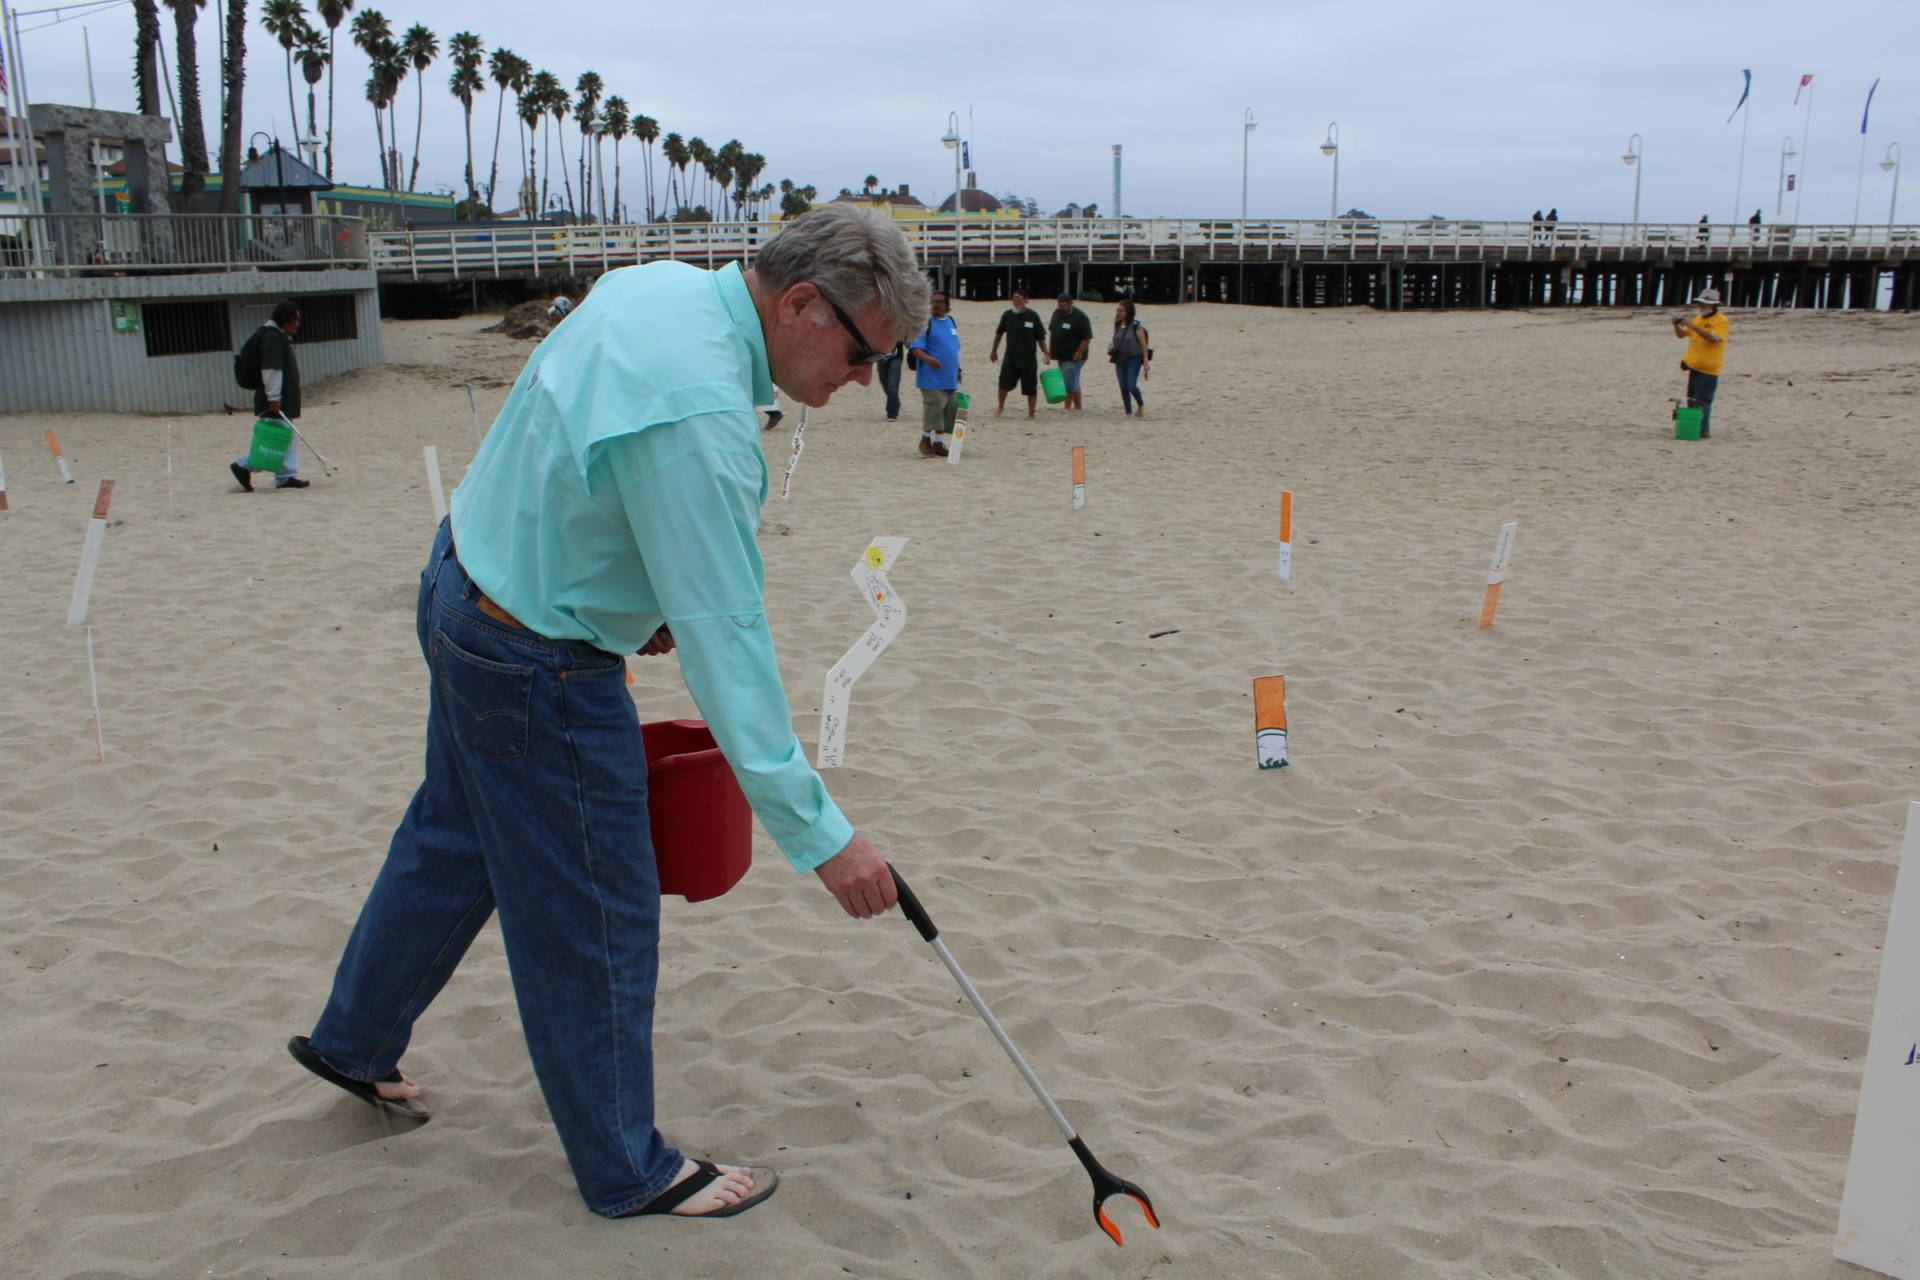 Assemblymember Mark Stone participated in the cleanup. He's been trying to make cigarettes sold in California filter-less so that what's left behind is less harmful. The bill has never gotten out of committee. Brandt Bates